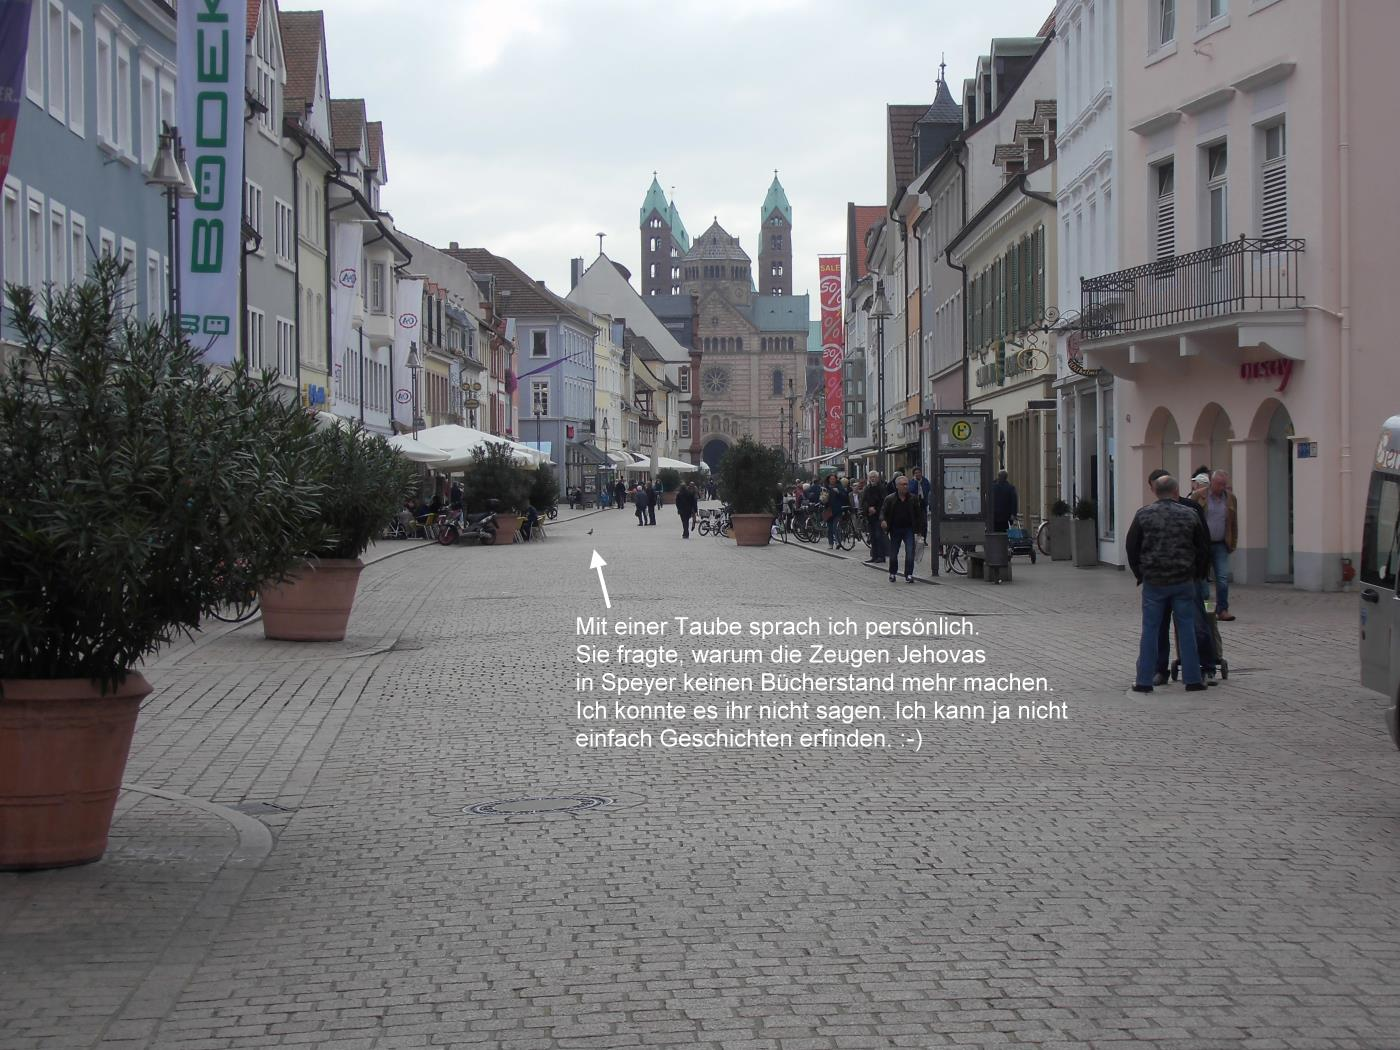 In Speyer no Jehovah's Witnesses, only Christians